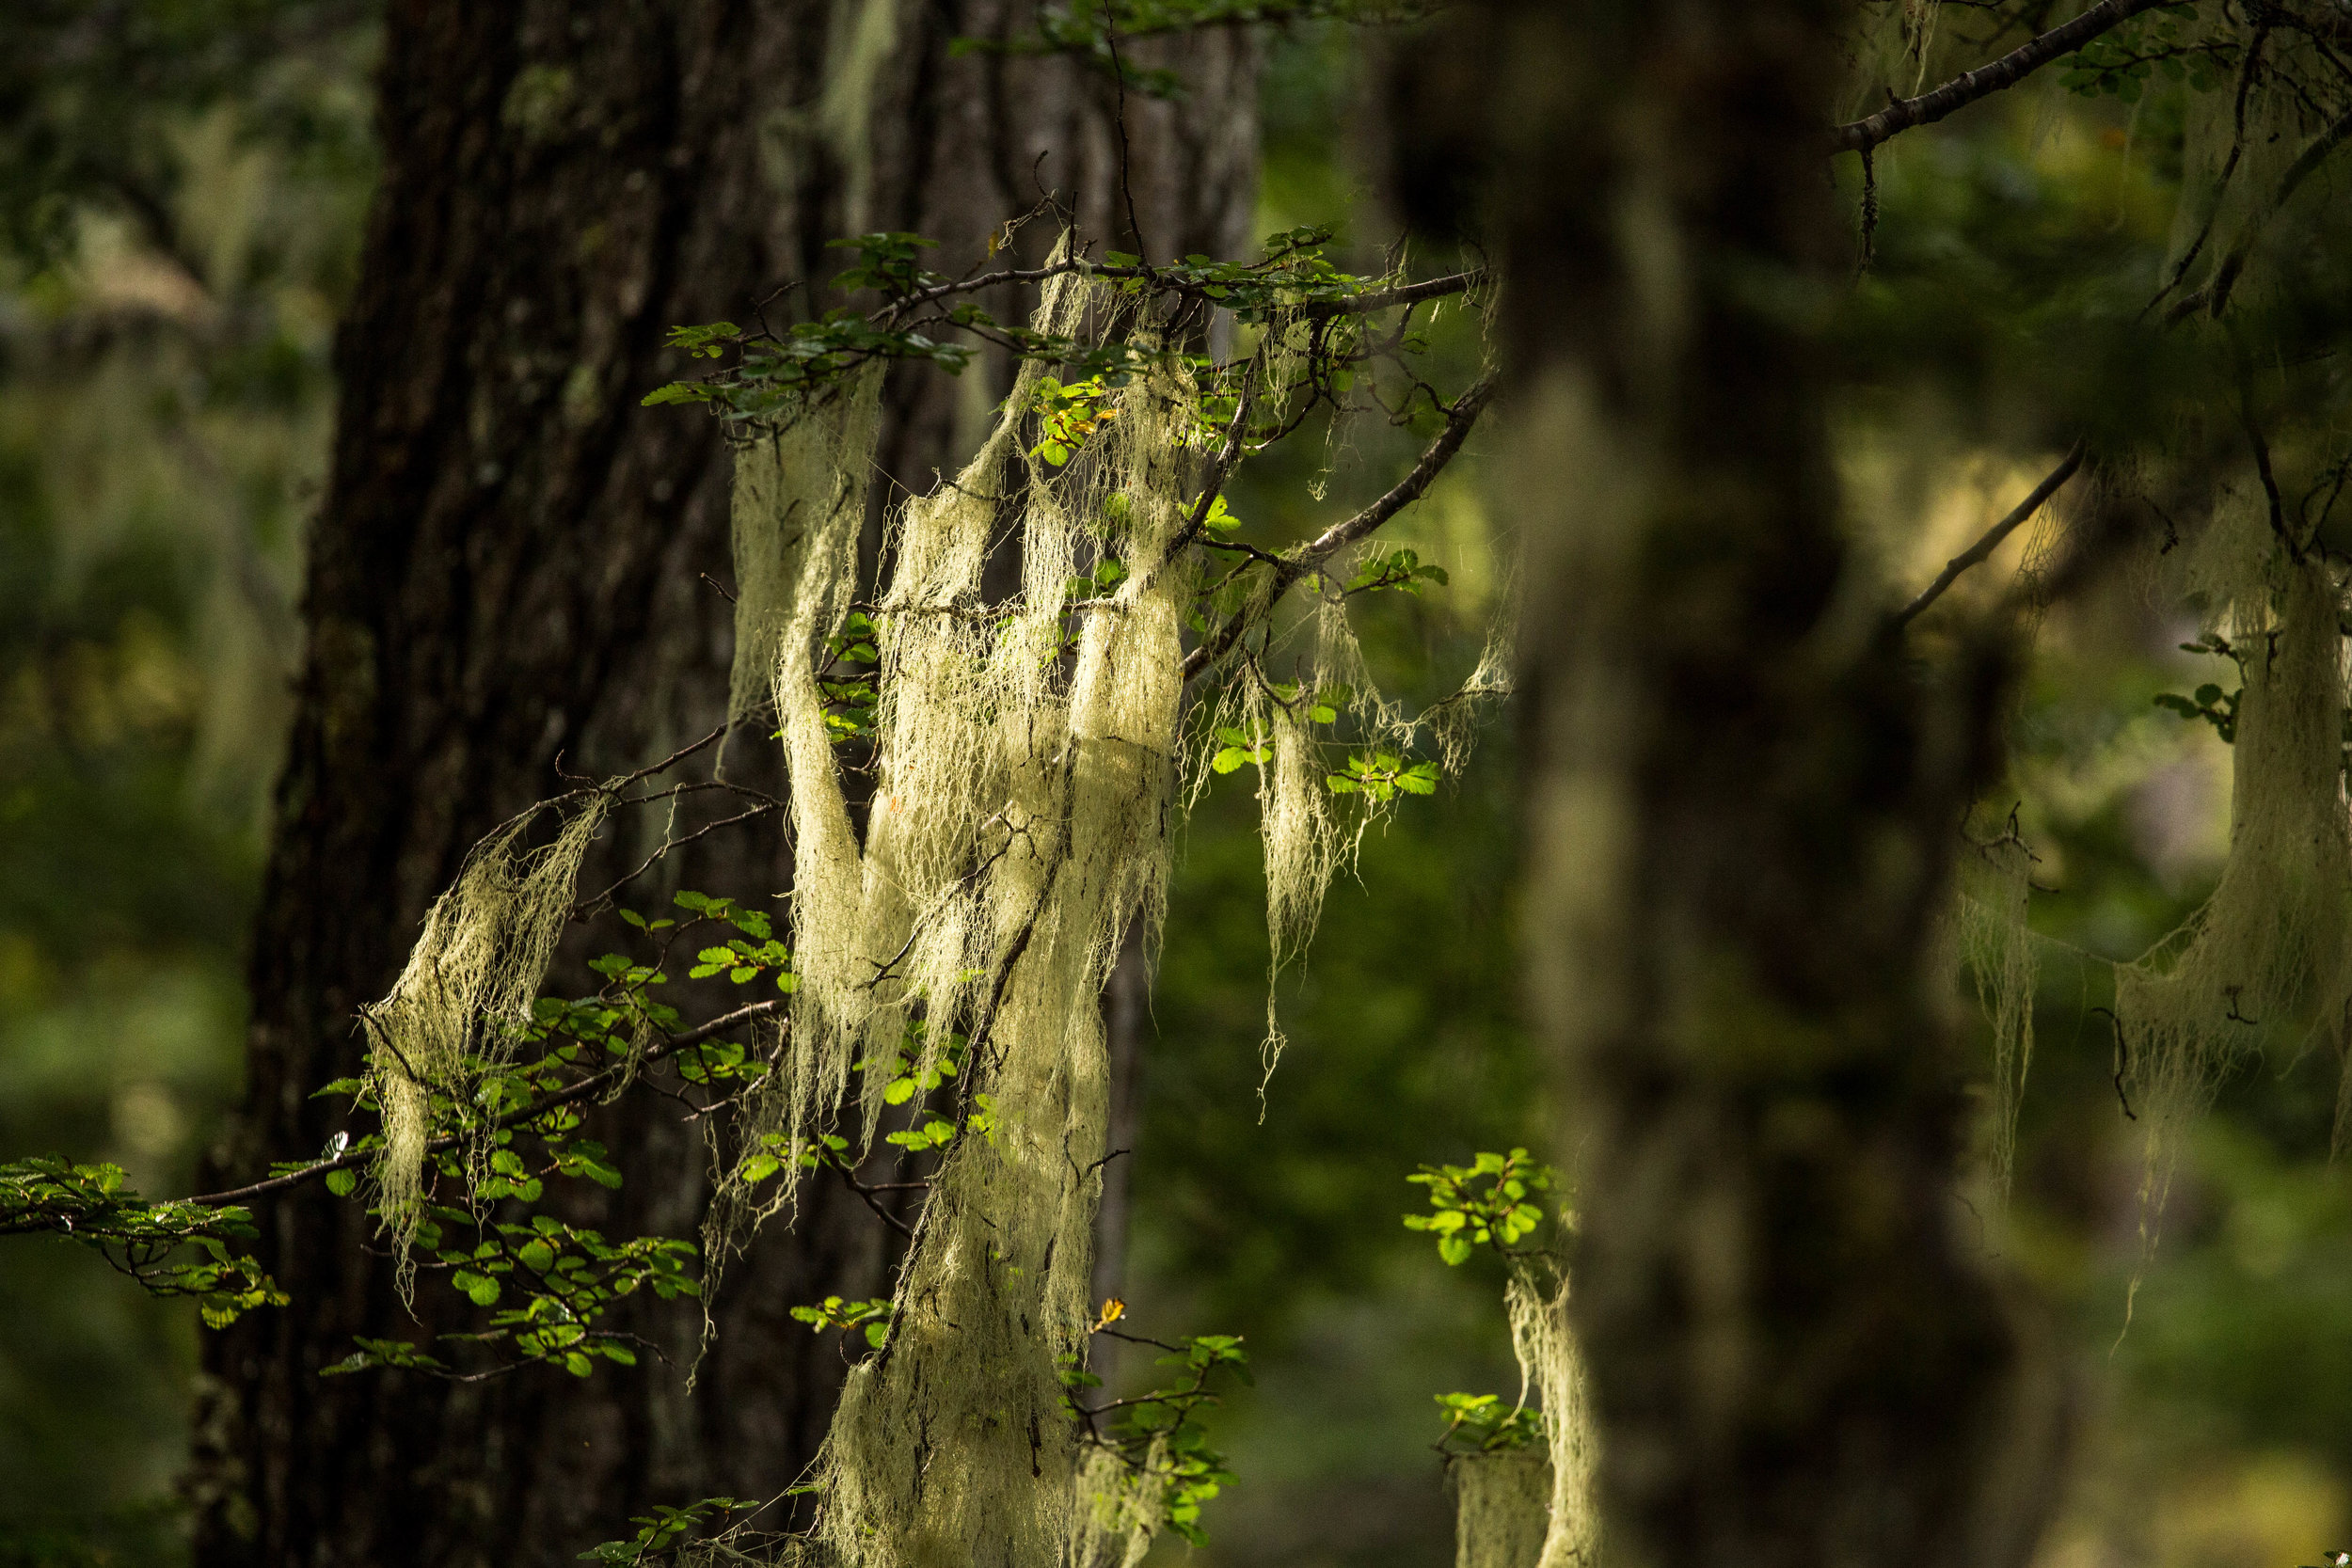 Rich moss and lichens covering branches and trees are signs of health of this old-growth ecosystem.